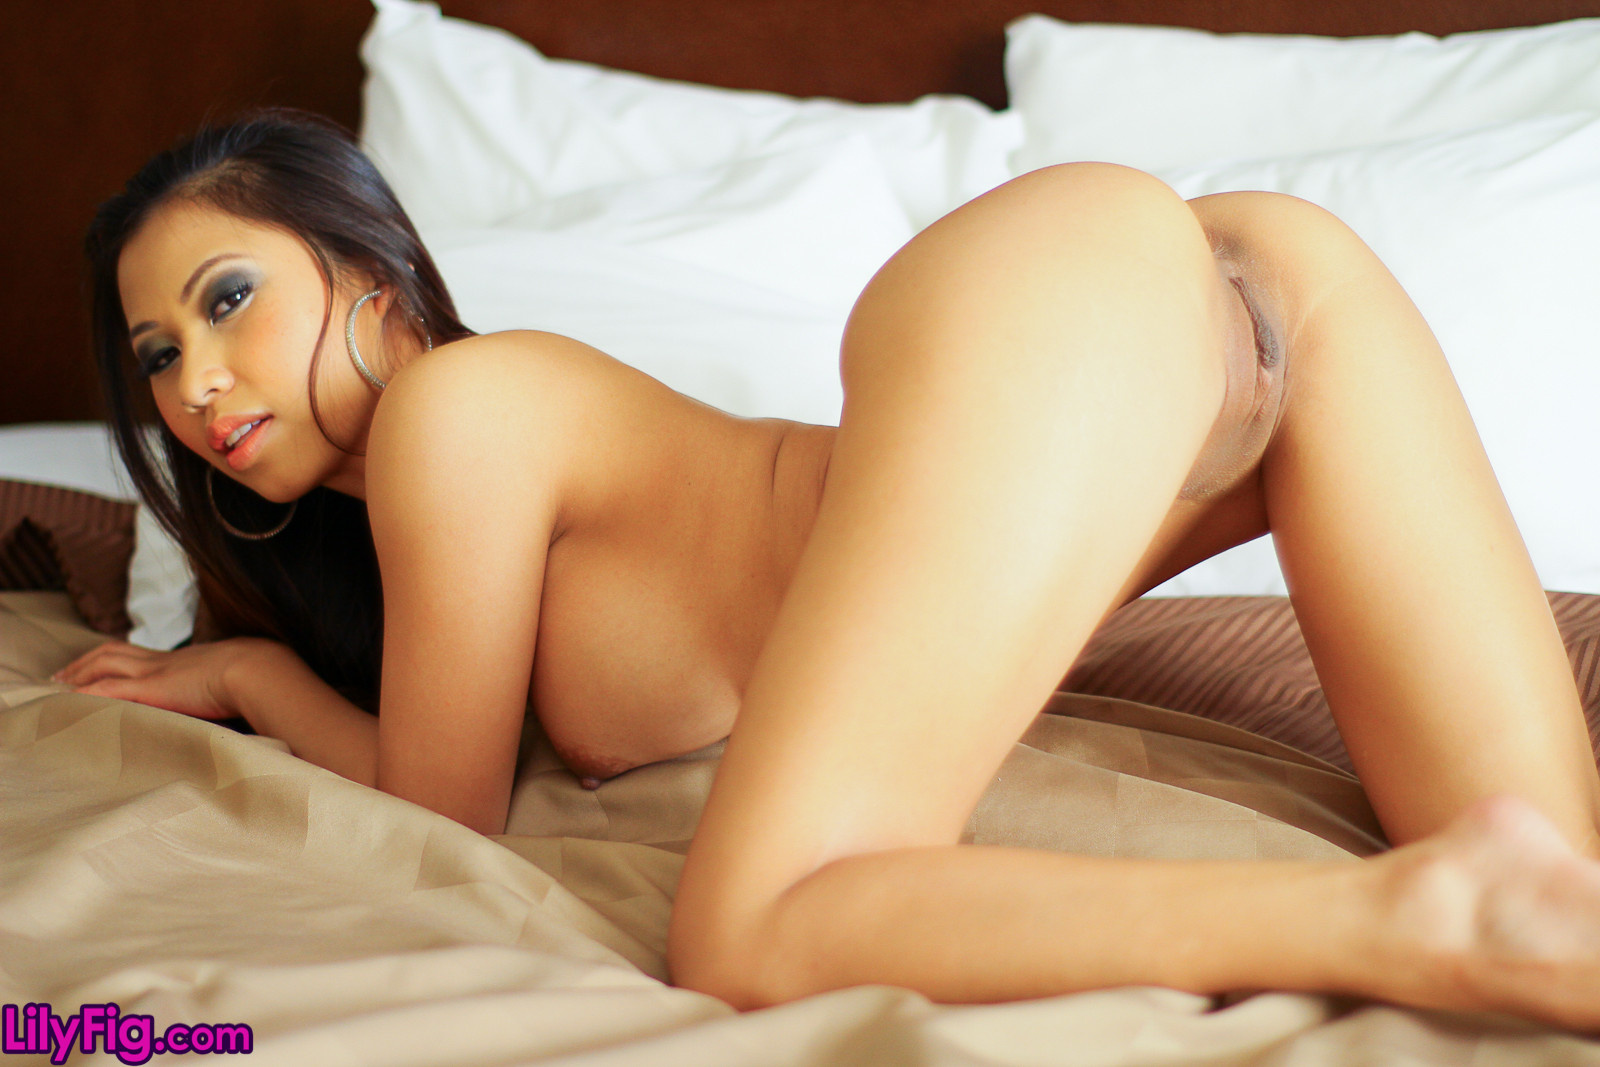 indian nude hairy girl sexz on bedroom bed